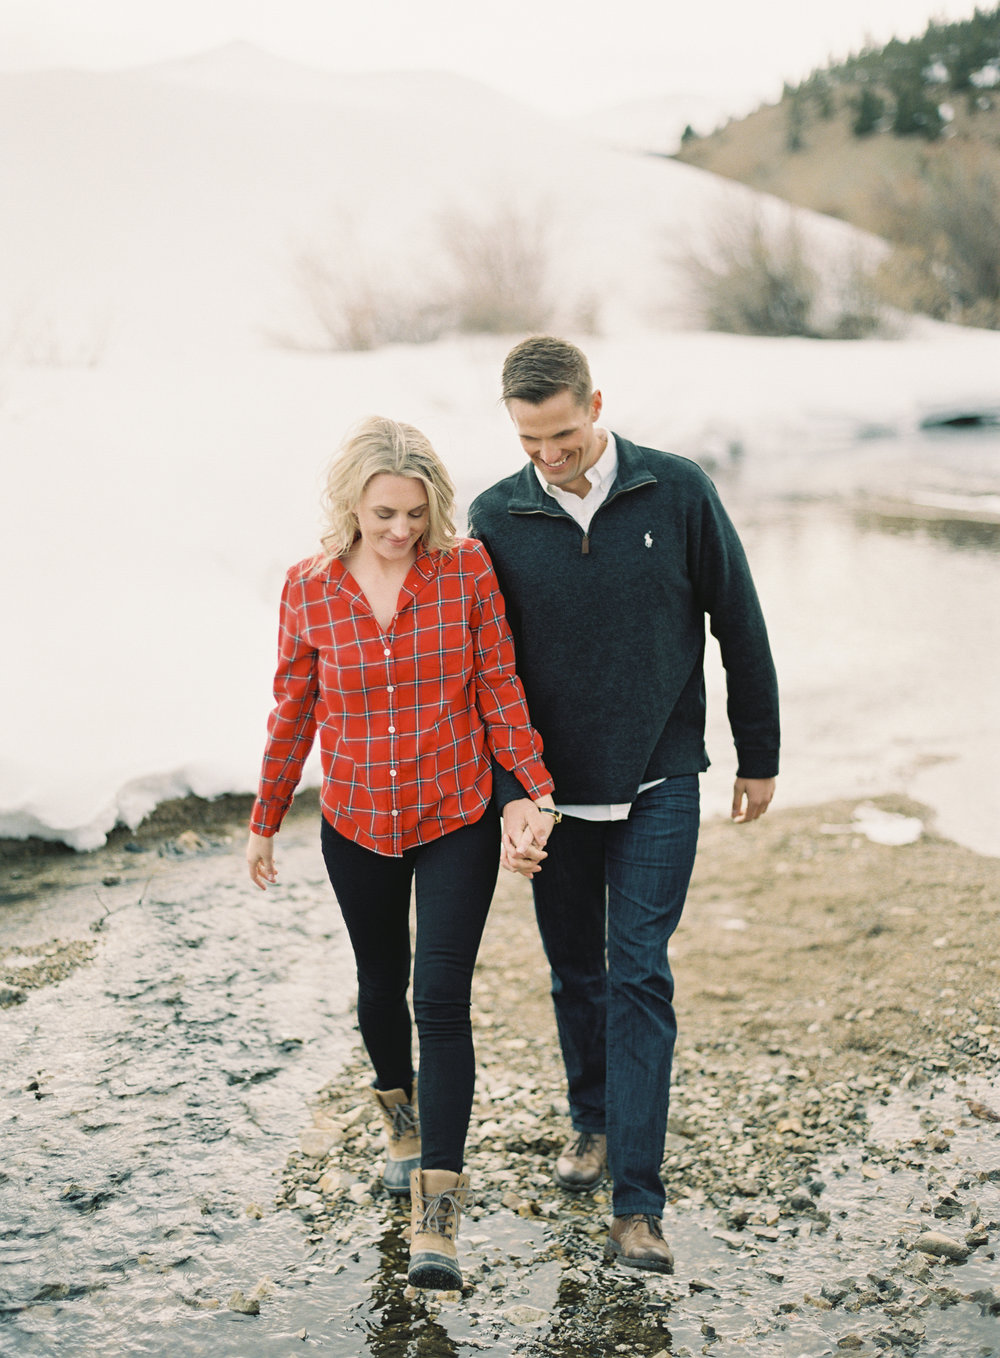 Sarah and John Engaged-Carrie King Photographer56.jpg